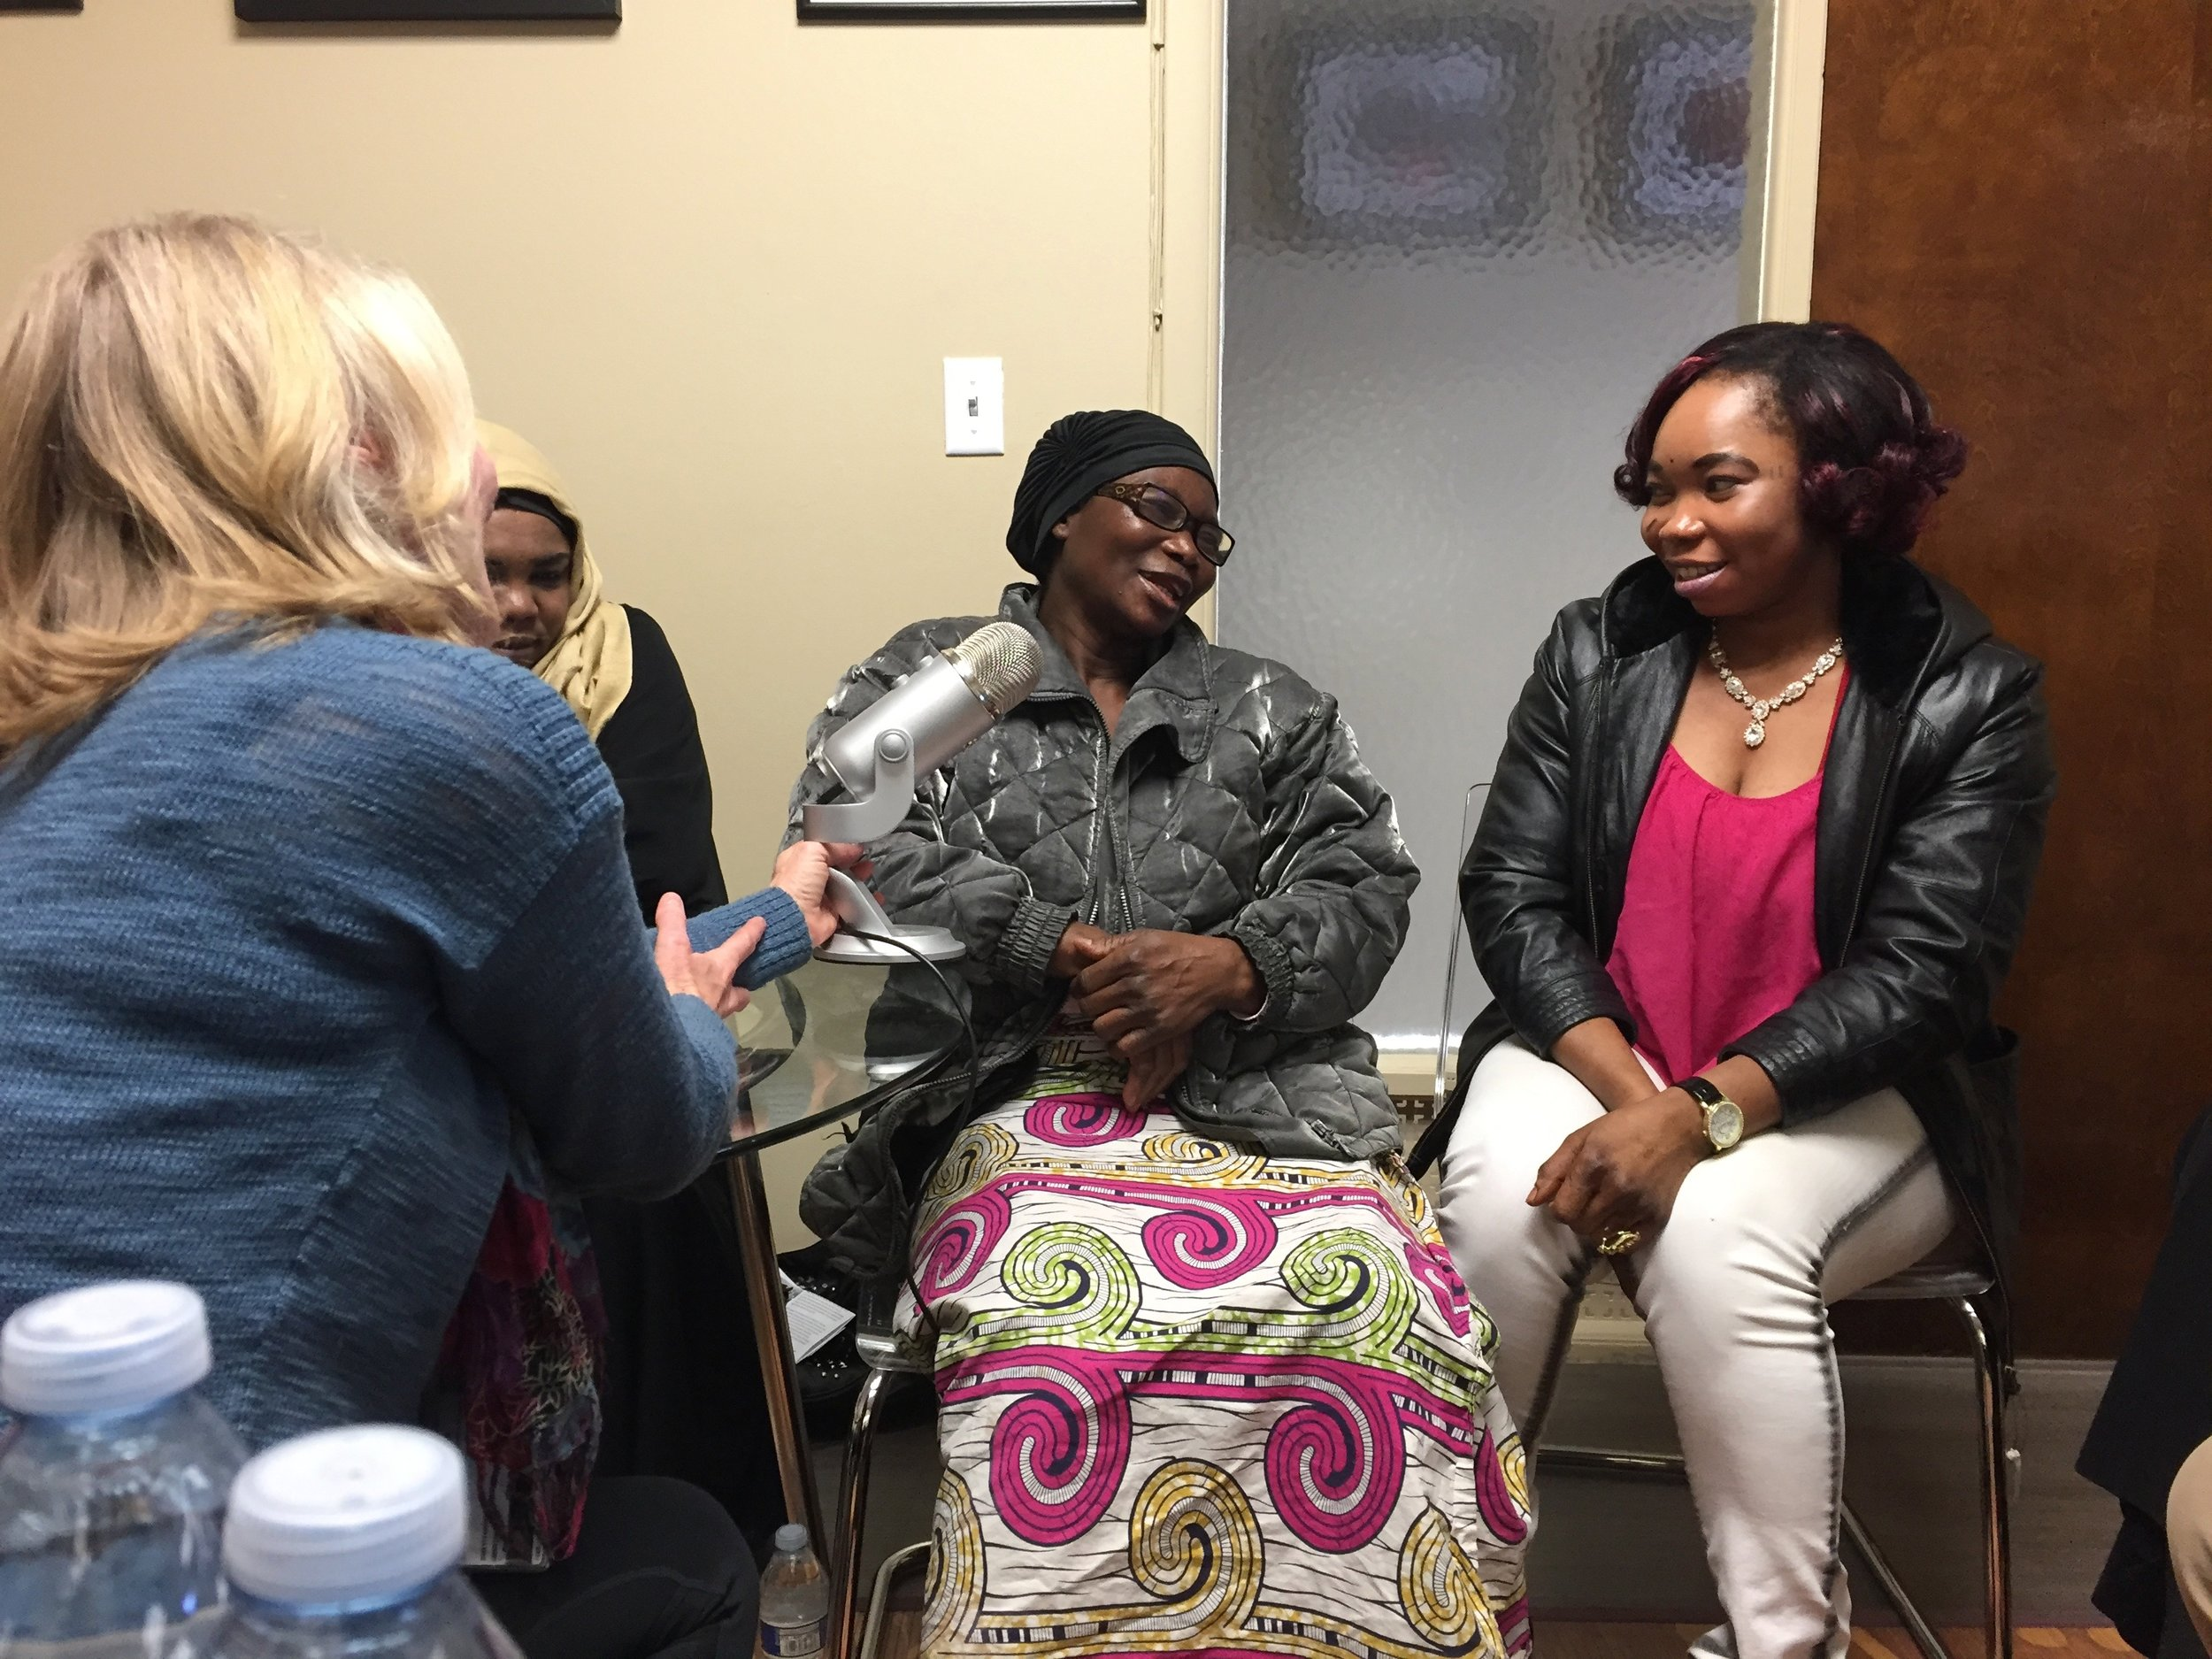 Women share stories about how Abby has helped them during her time here.